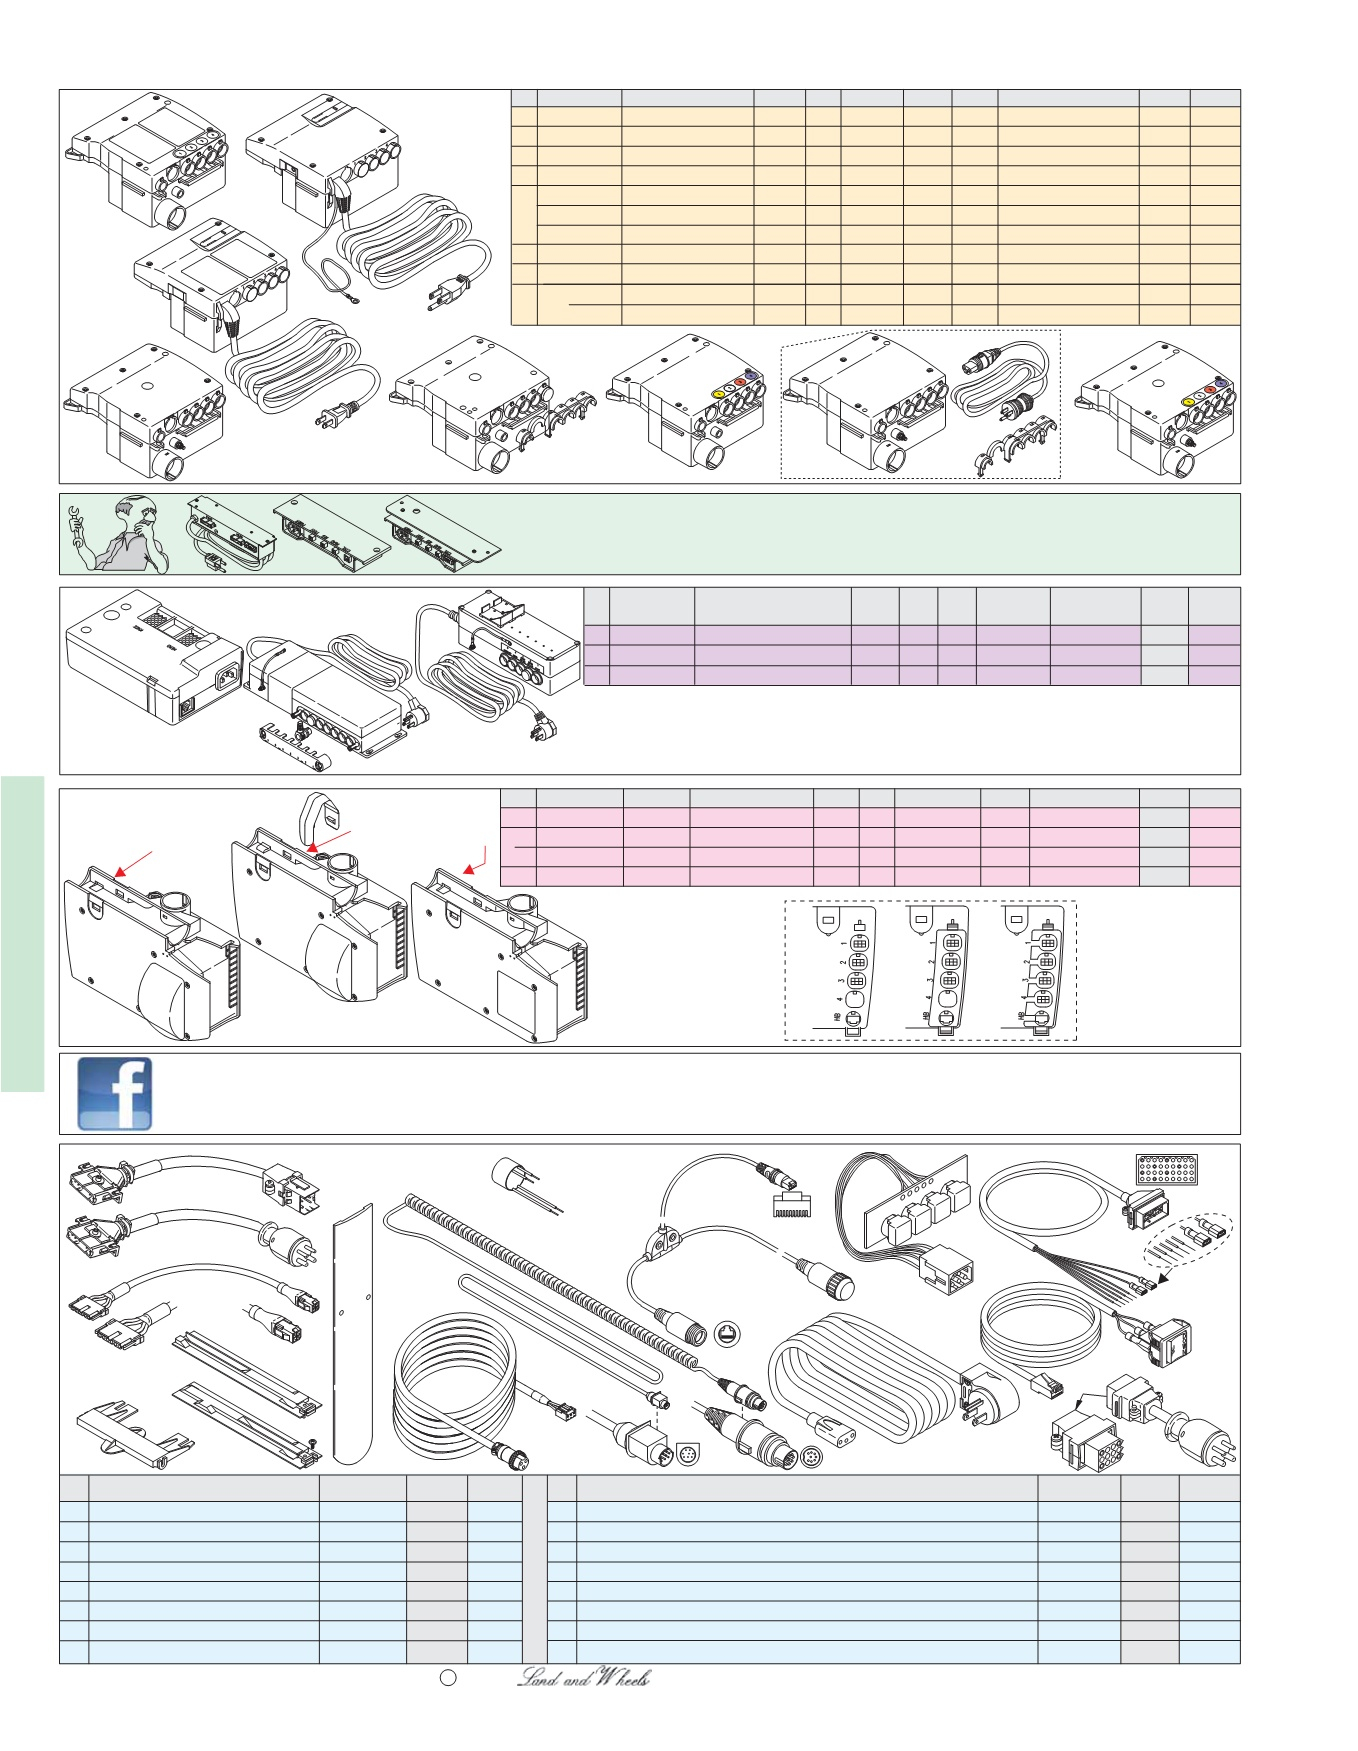 linak actuator wiring diagram Download-Land and Wheels page 400 5-t